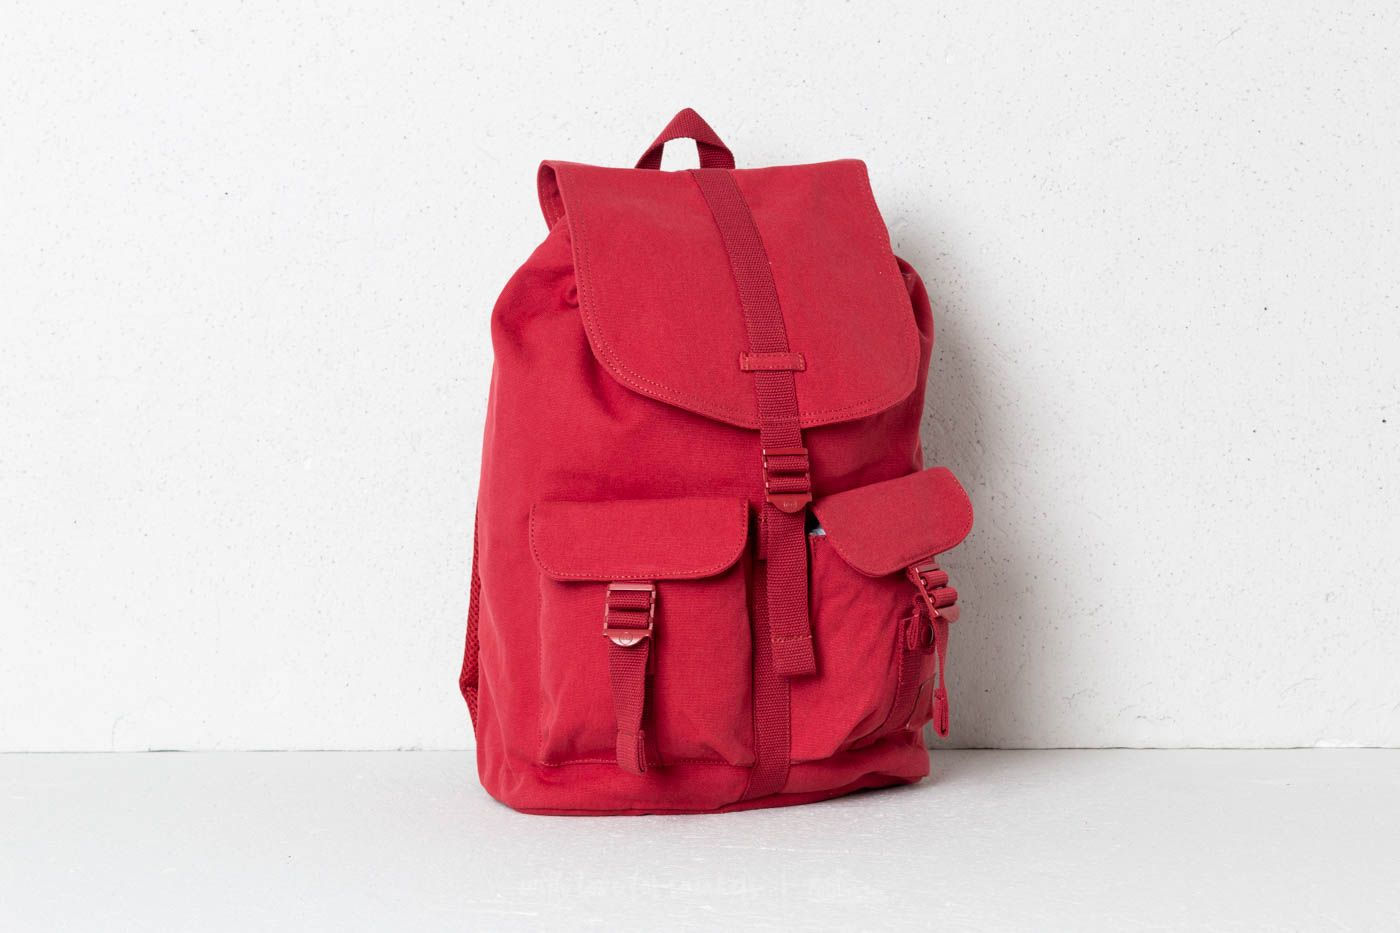 0398c92802c Herschel Supply Co. Dawson Backpack Brick Red